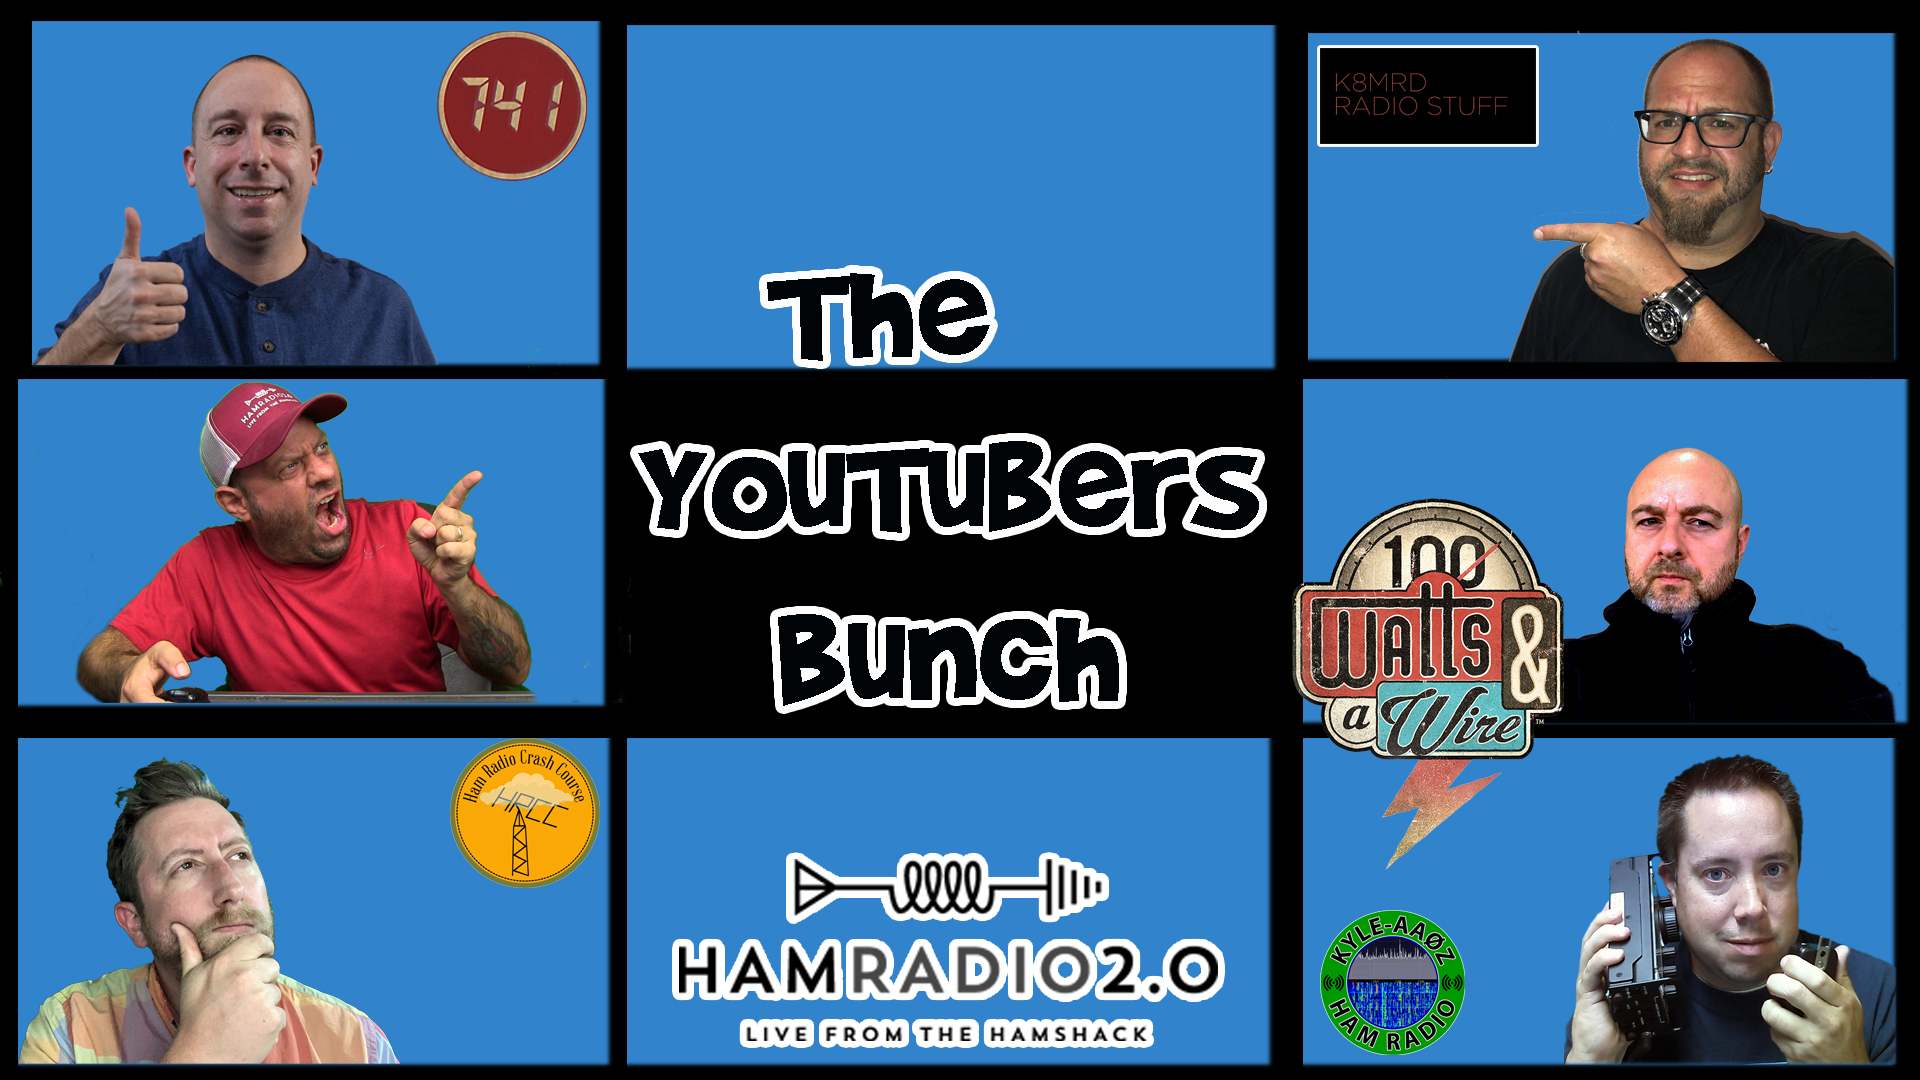 Episode 280: YouTubers Bunch Discusses the ARRL, Part 2